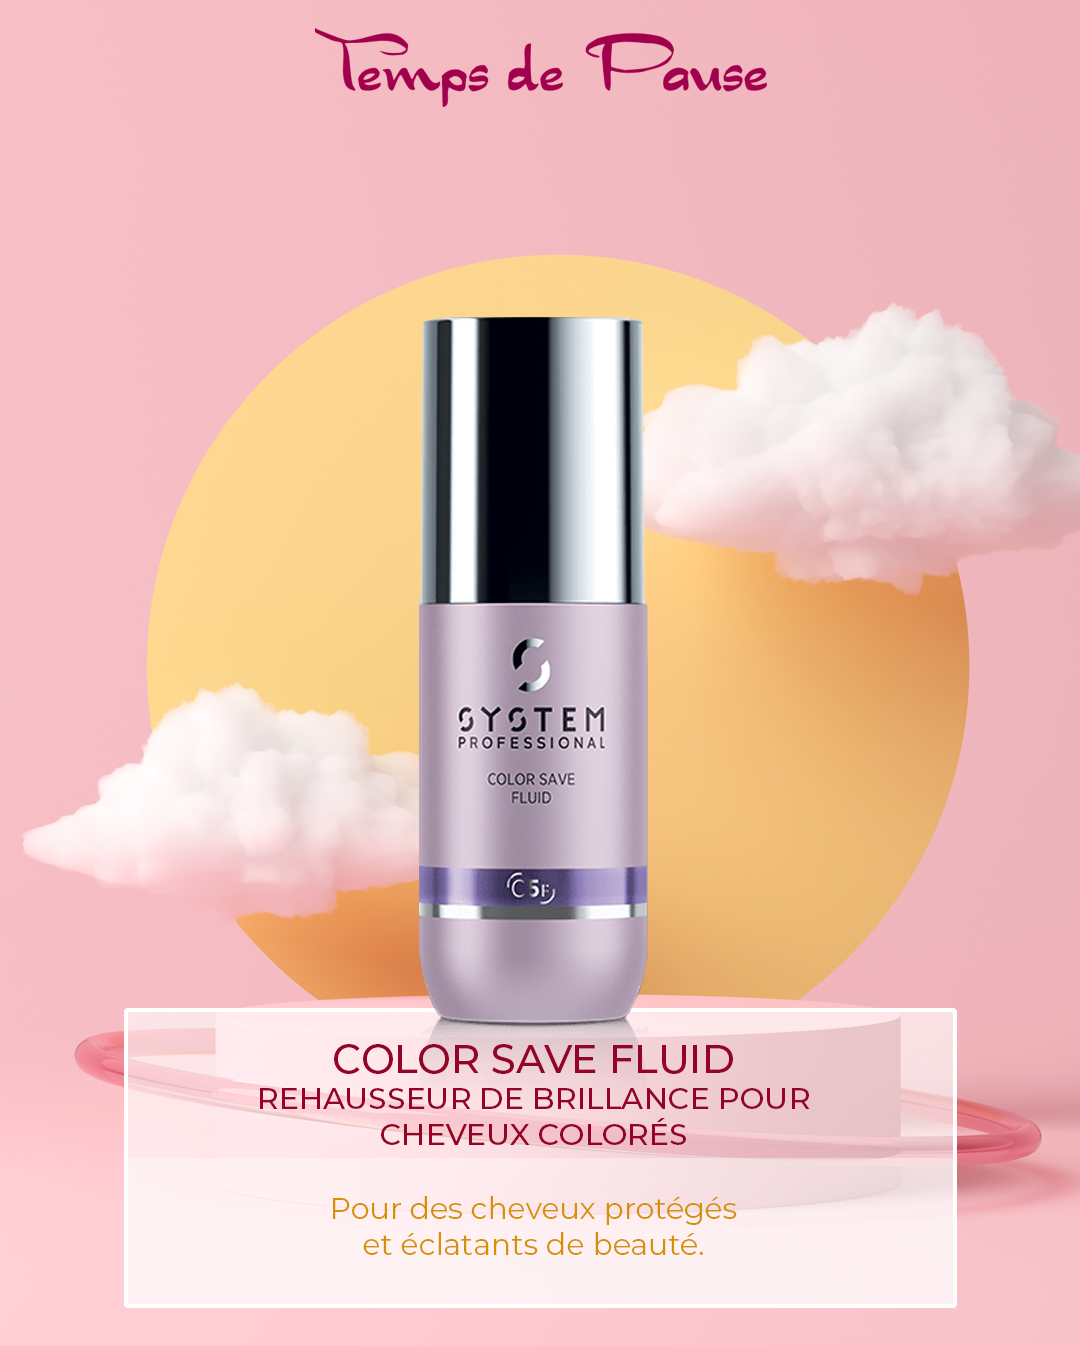 COLOR SAVE FLUID, Rehausseur de brillance pour cheveux colorés